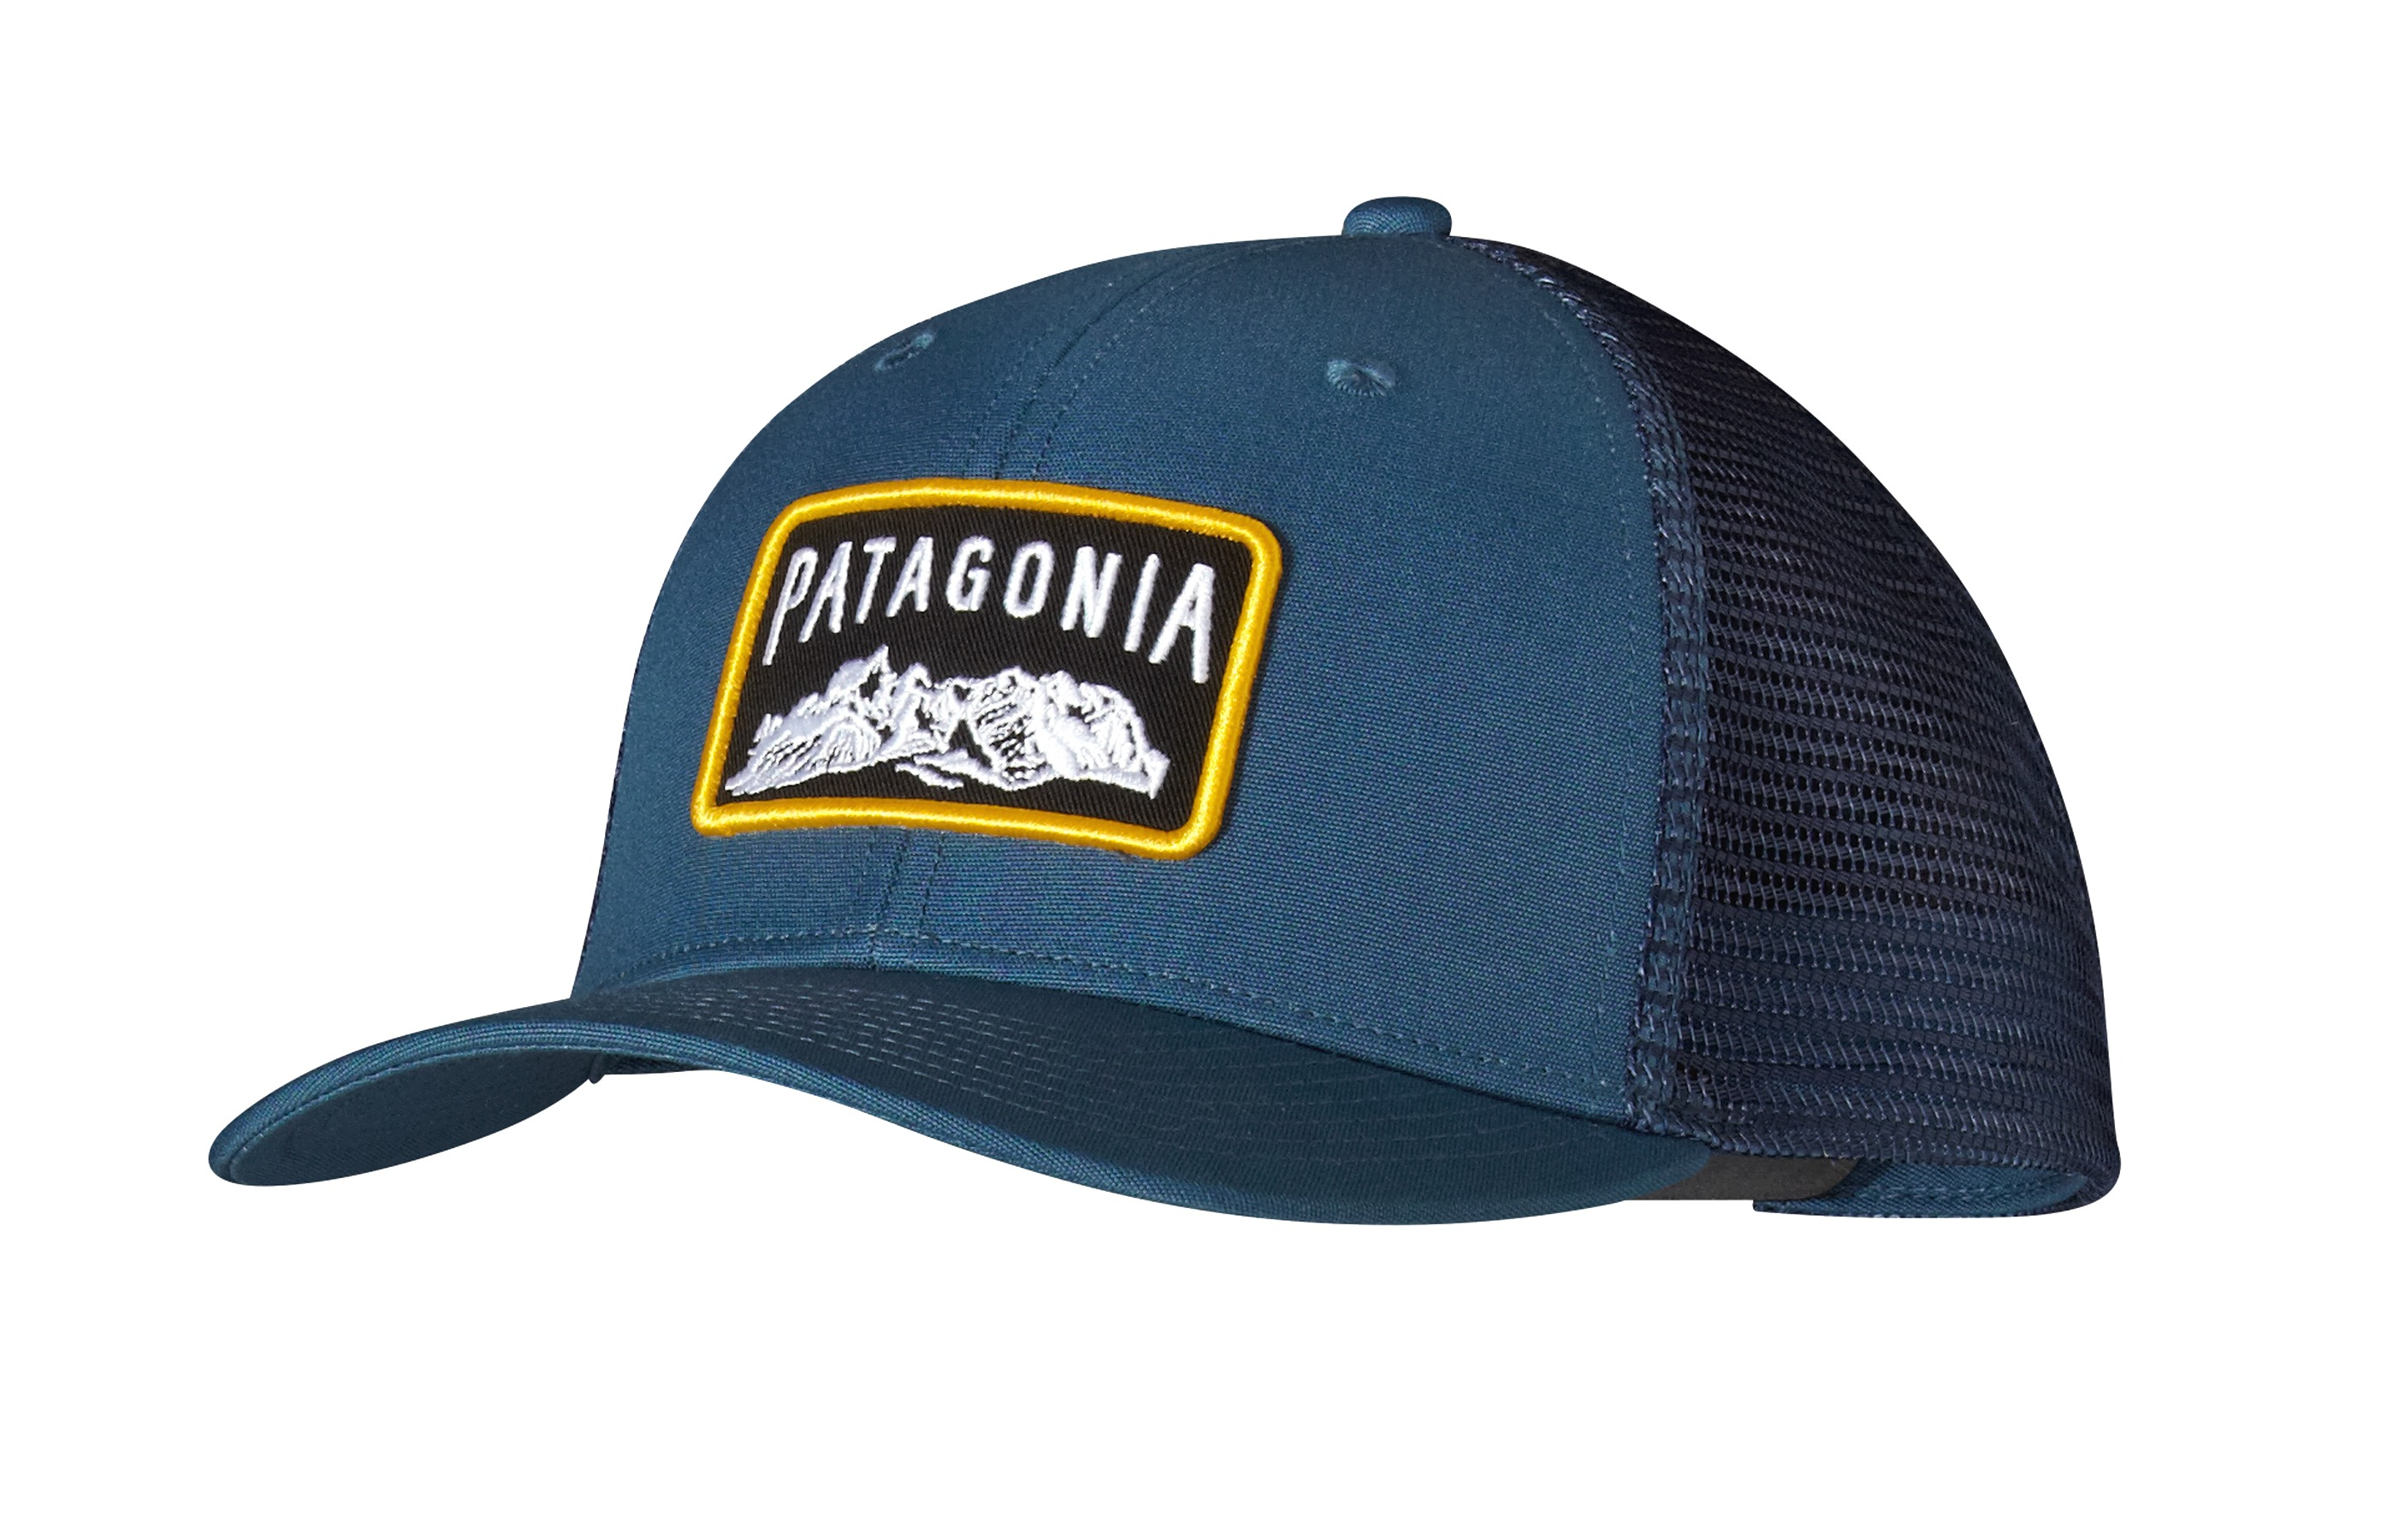 Patagonia climb a mountain trucker hat glass blue for Patagonia fishing hats